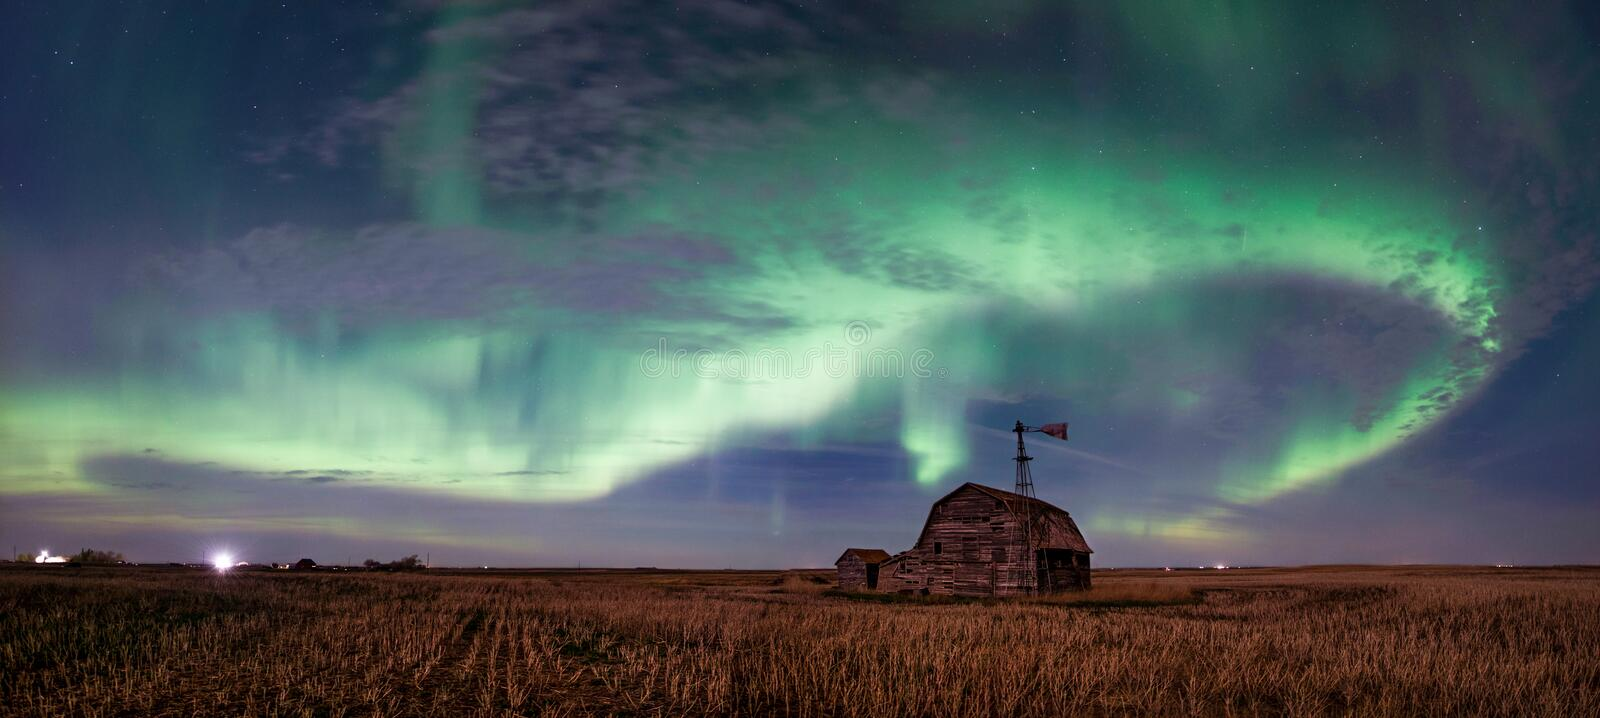 Swirl of bright Northern Lights over vintage barn in Saskatchewan, Canada stock photo